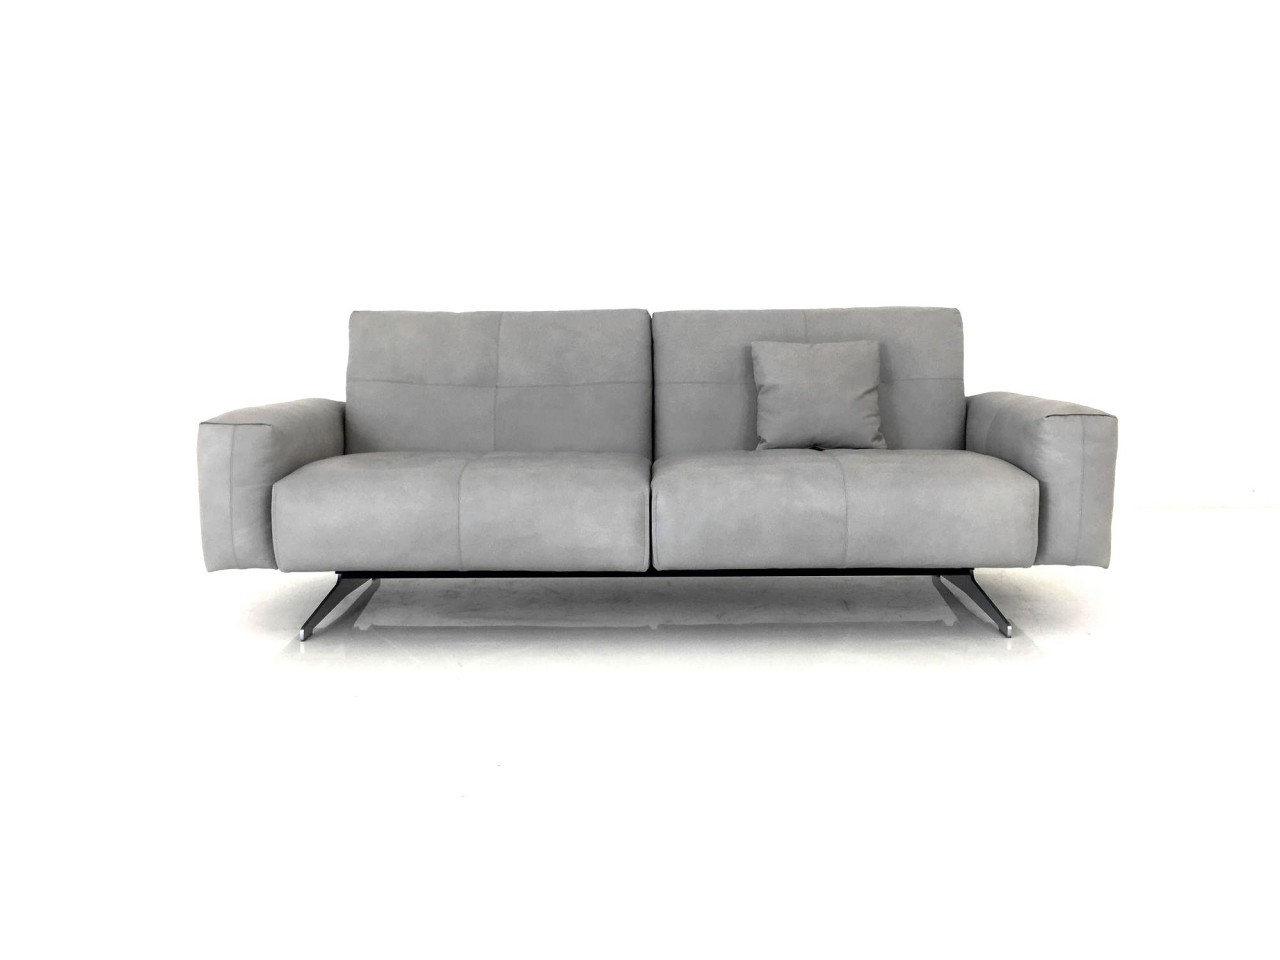 rolf benz rb 50 sofa mit r ckenverstellung in leder. Black Bedroom Furniture Sets. Home Design Ideas